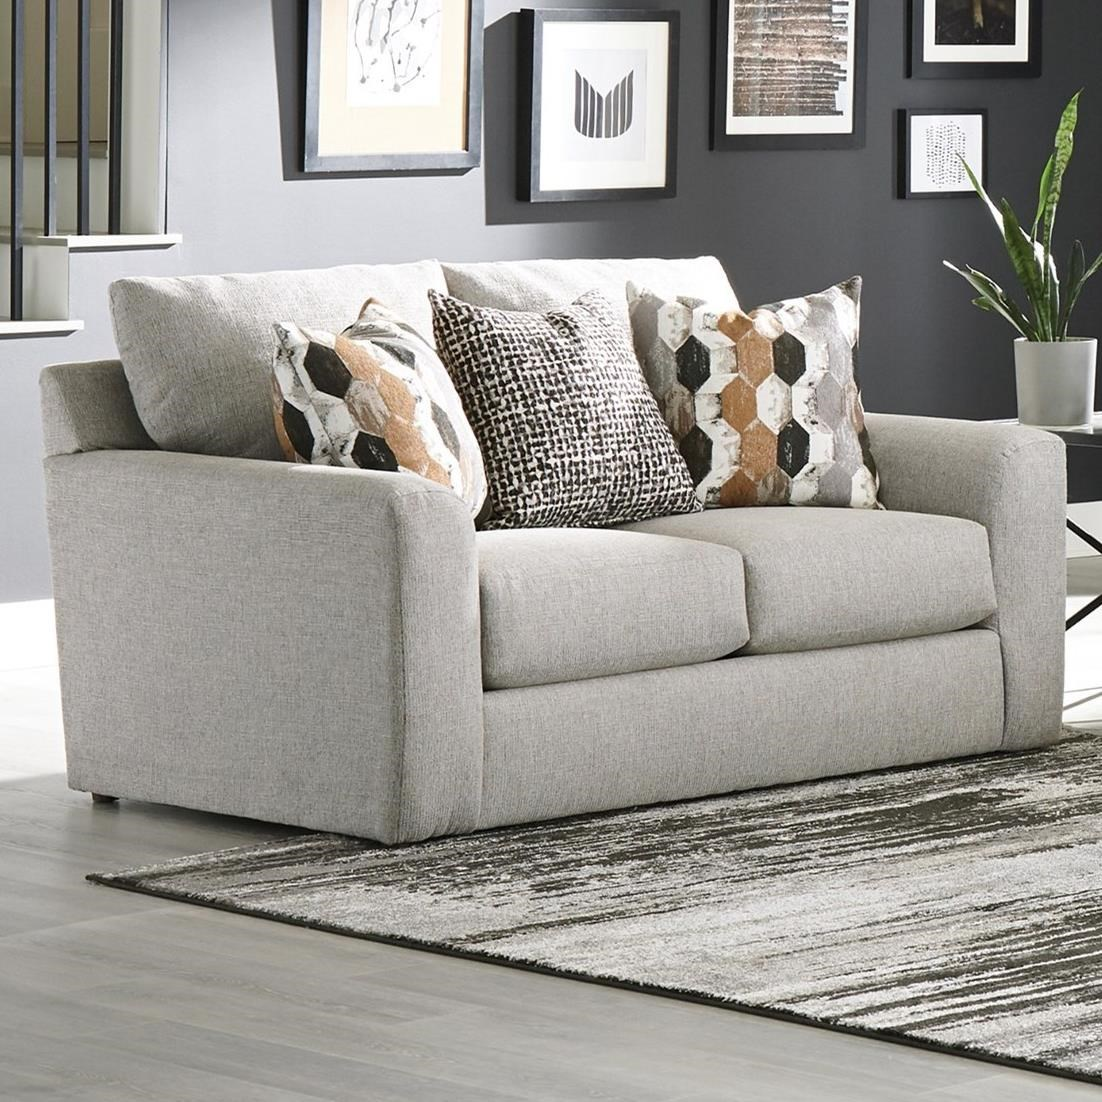 Hooten Loveseat by Jackson Furniture at Northeast Factory Direct